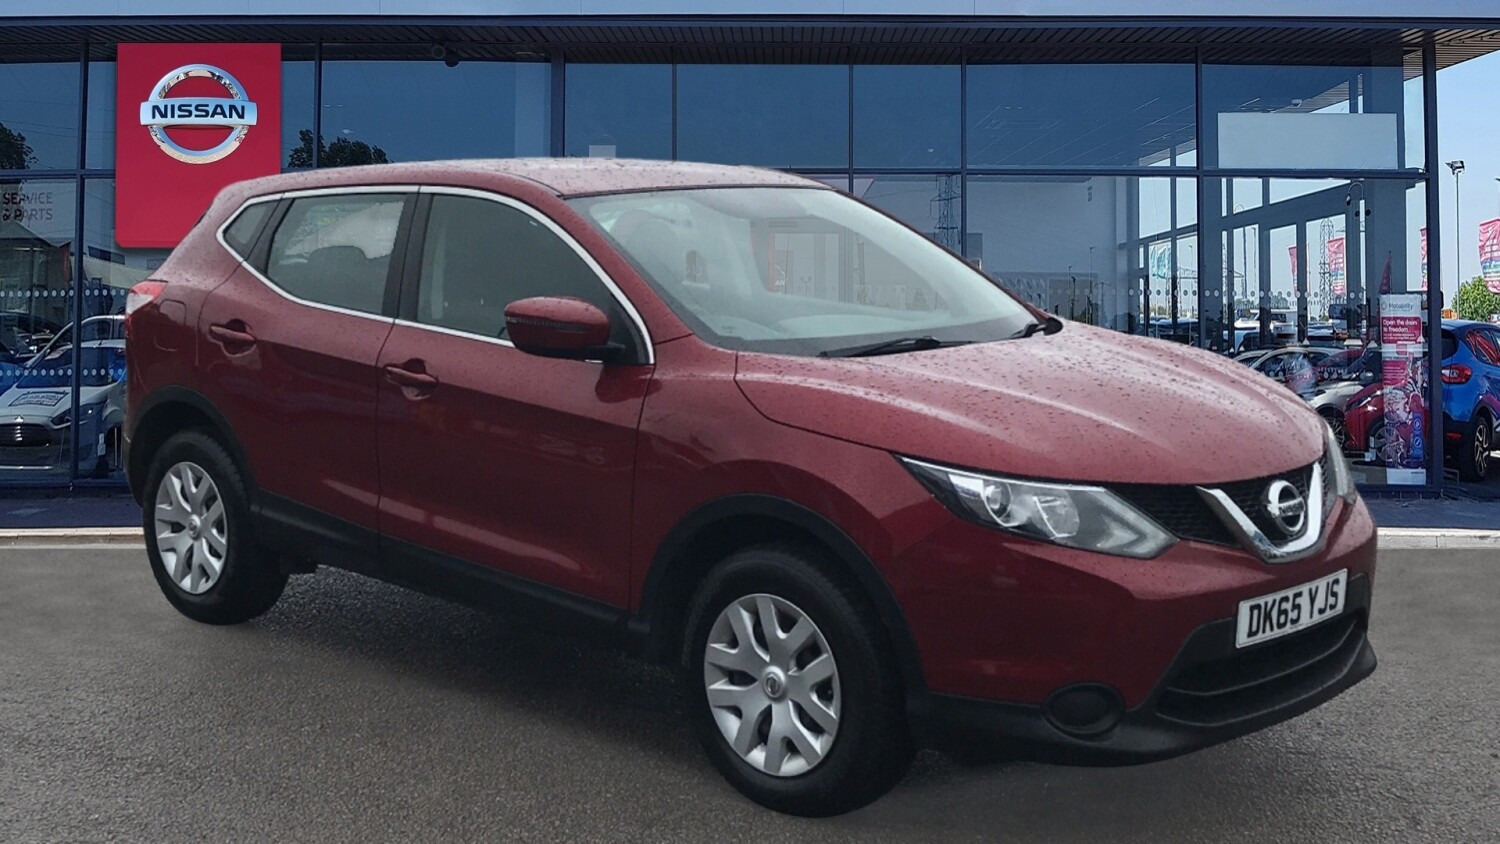 used nissan qashqai 1 2 dig t visia 5dr petrol hatchback. Black Bedroom Furniture Sets. Home Design Ideas